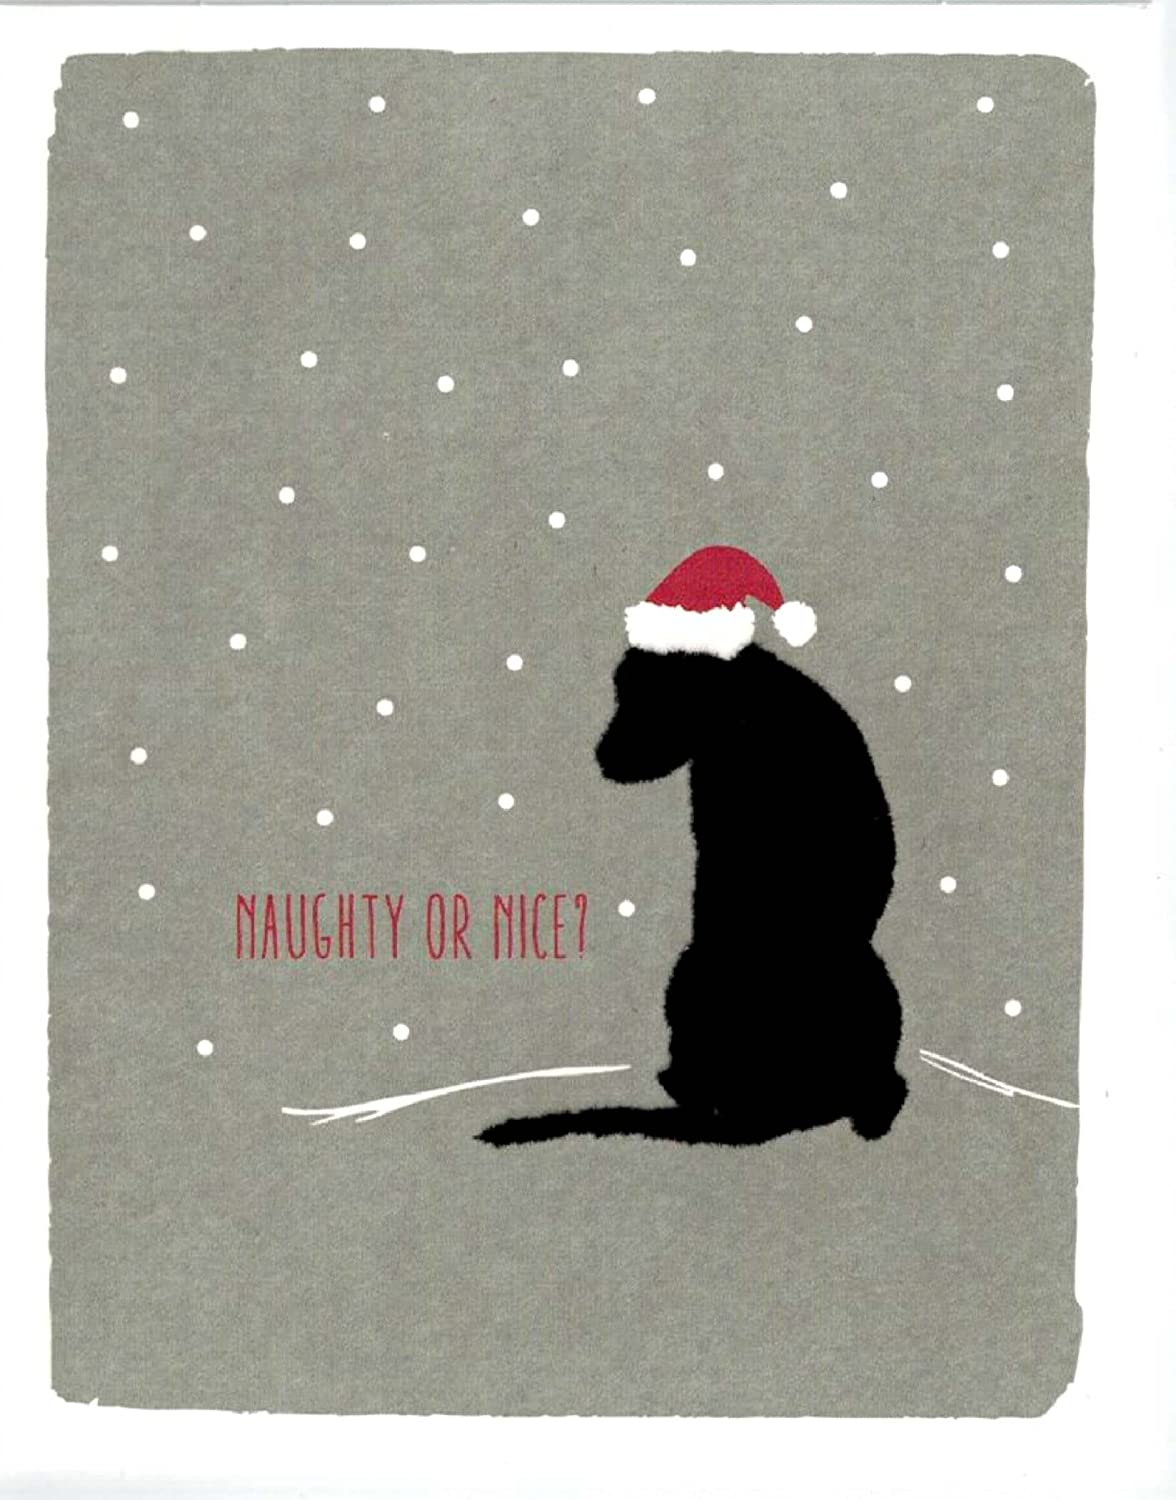 Amazon.com : Black Lab Holiday Cards Naughty or Nice? Box of 15 ...